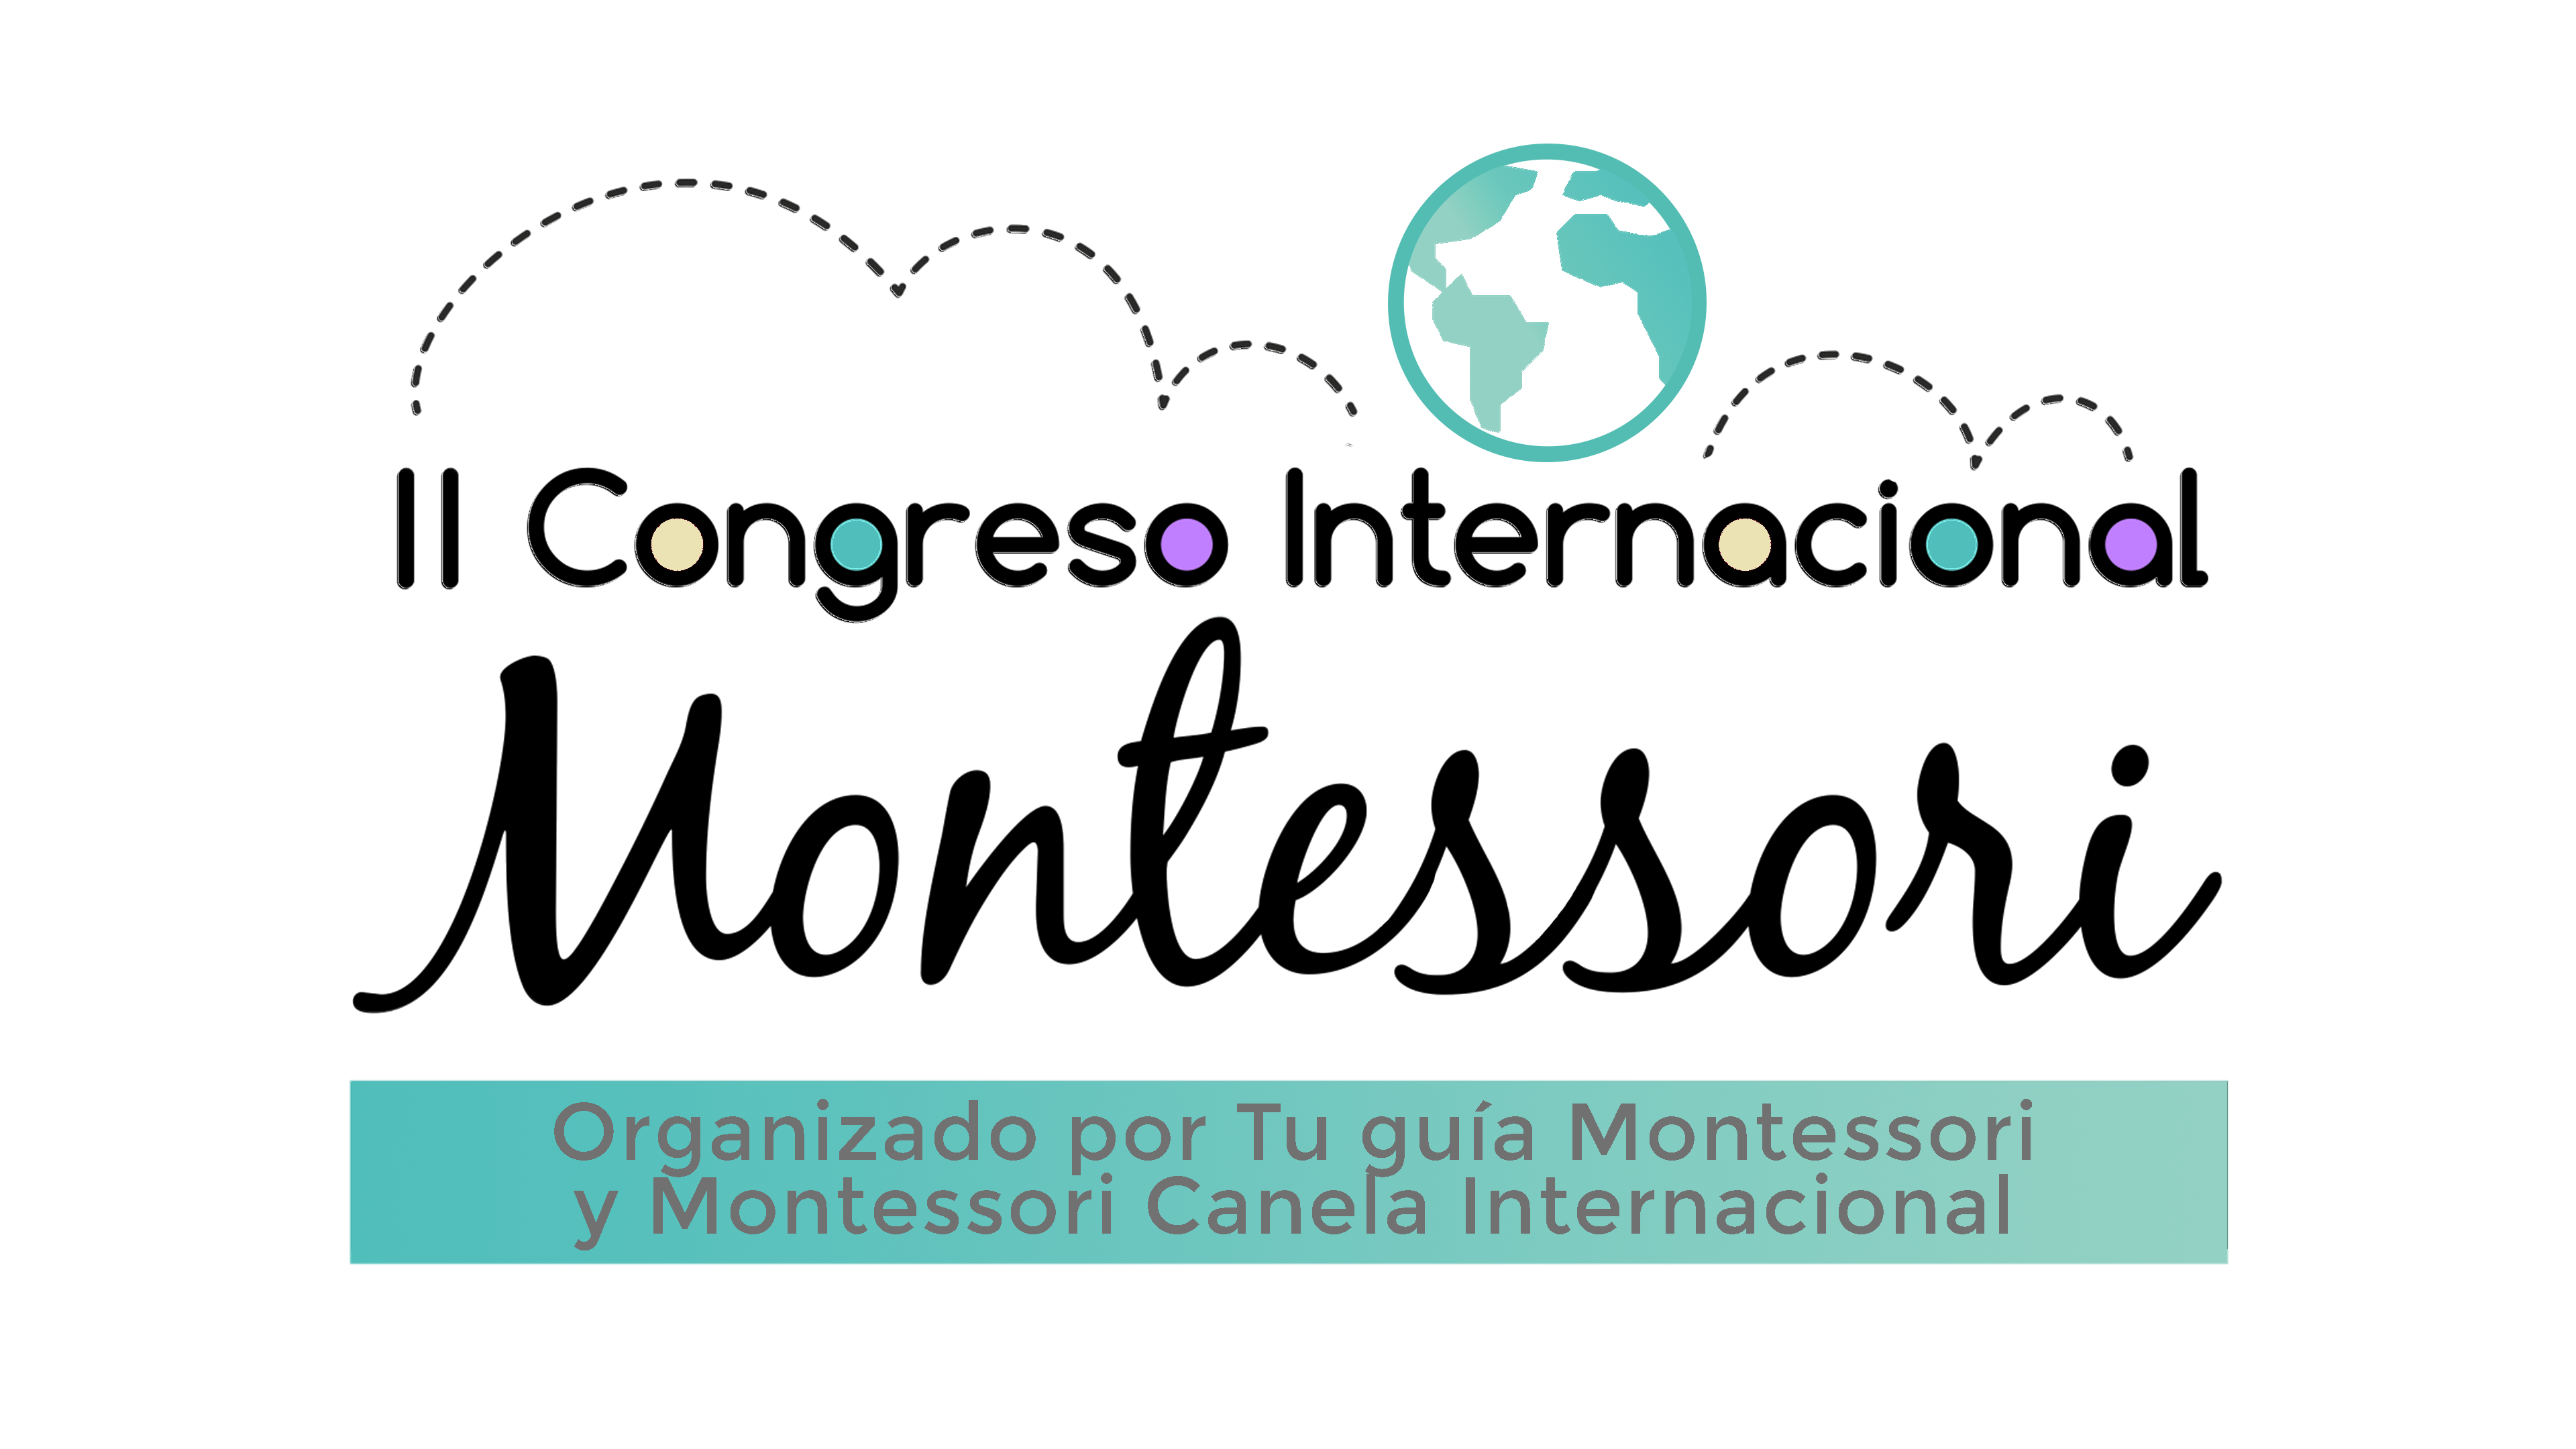 Congreso Internacional Montessori